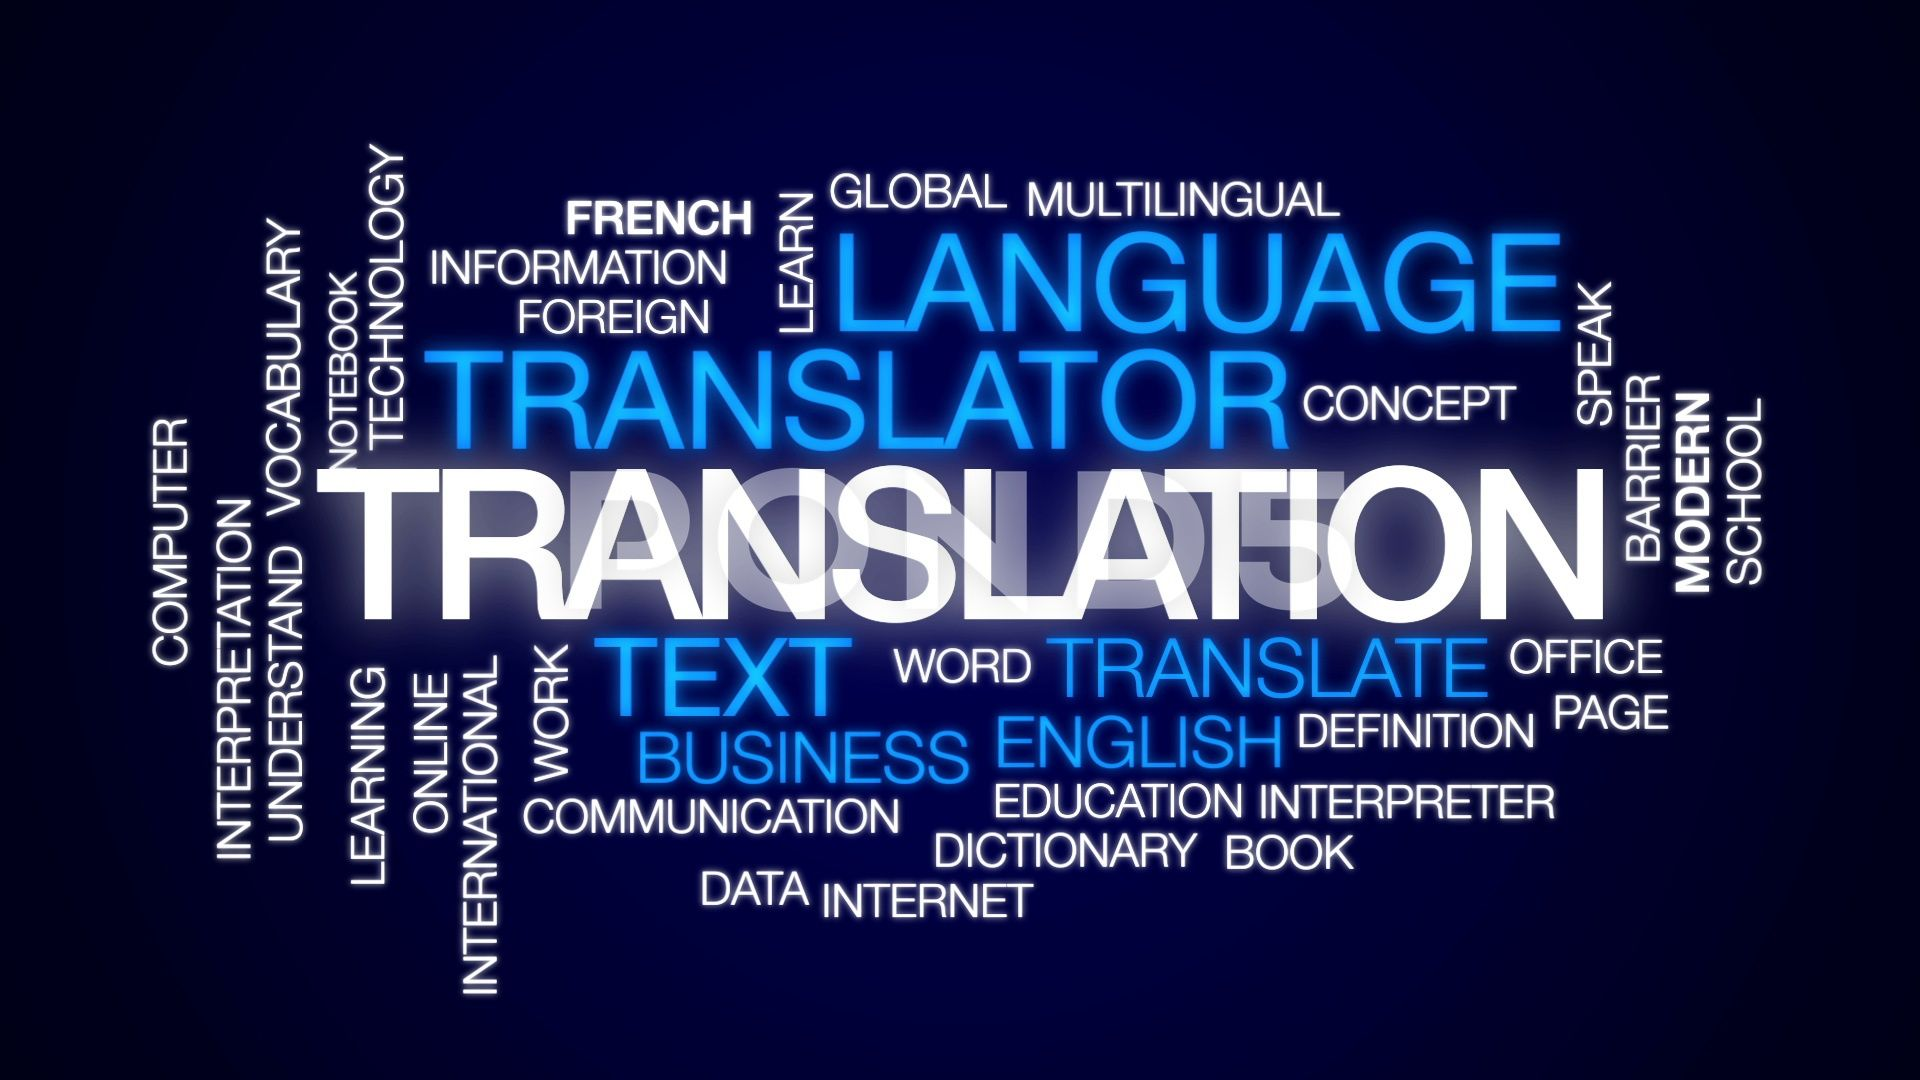 Reasons why a subject matter expert is important for every translation